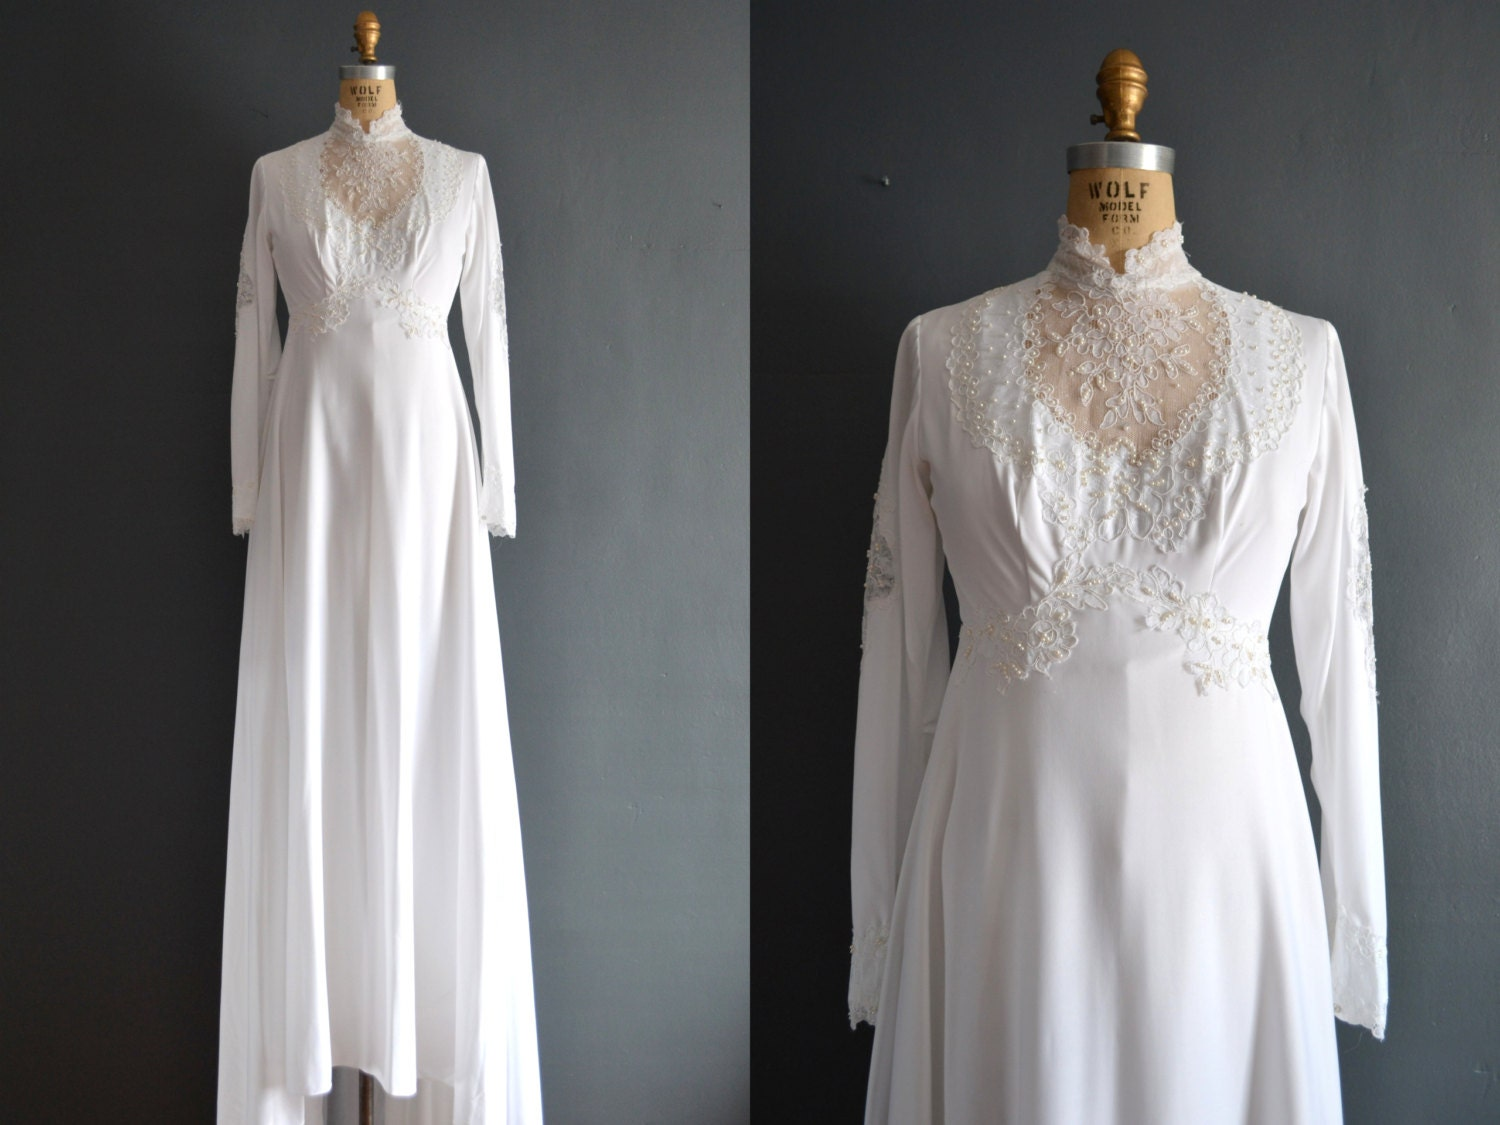 Sale 70s wedding dress 1970s wedding dress deena for 1970s wedding dresses for sale